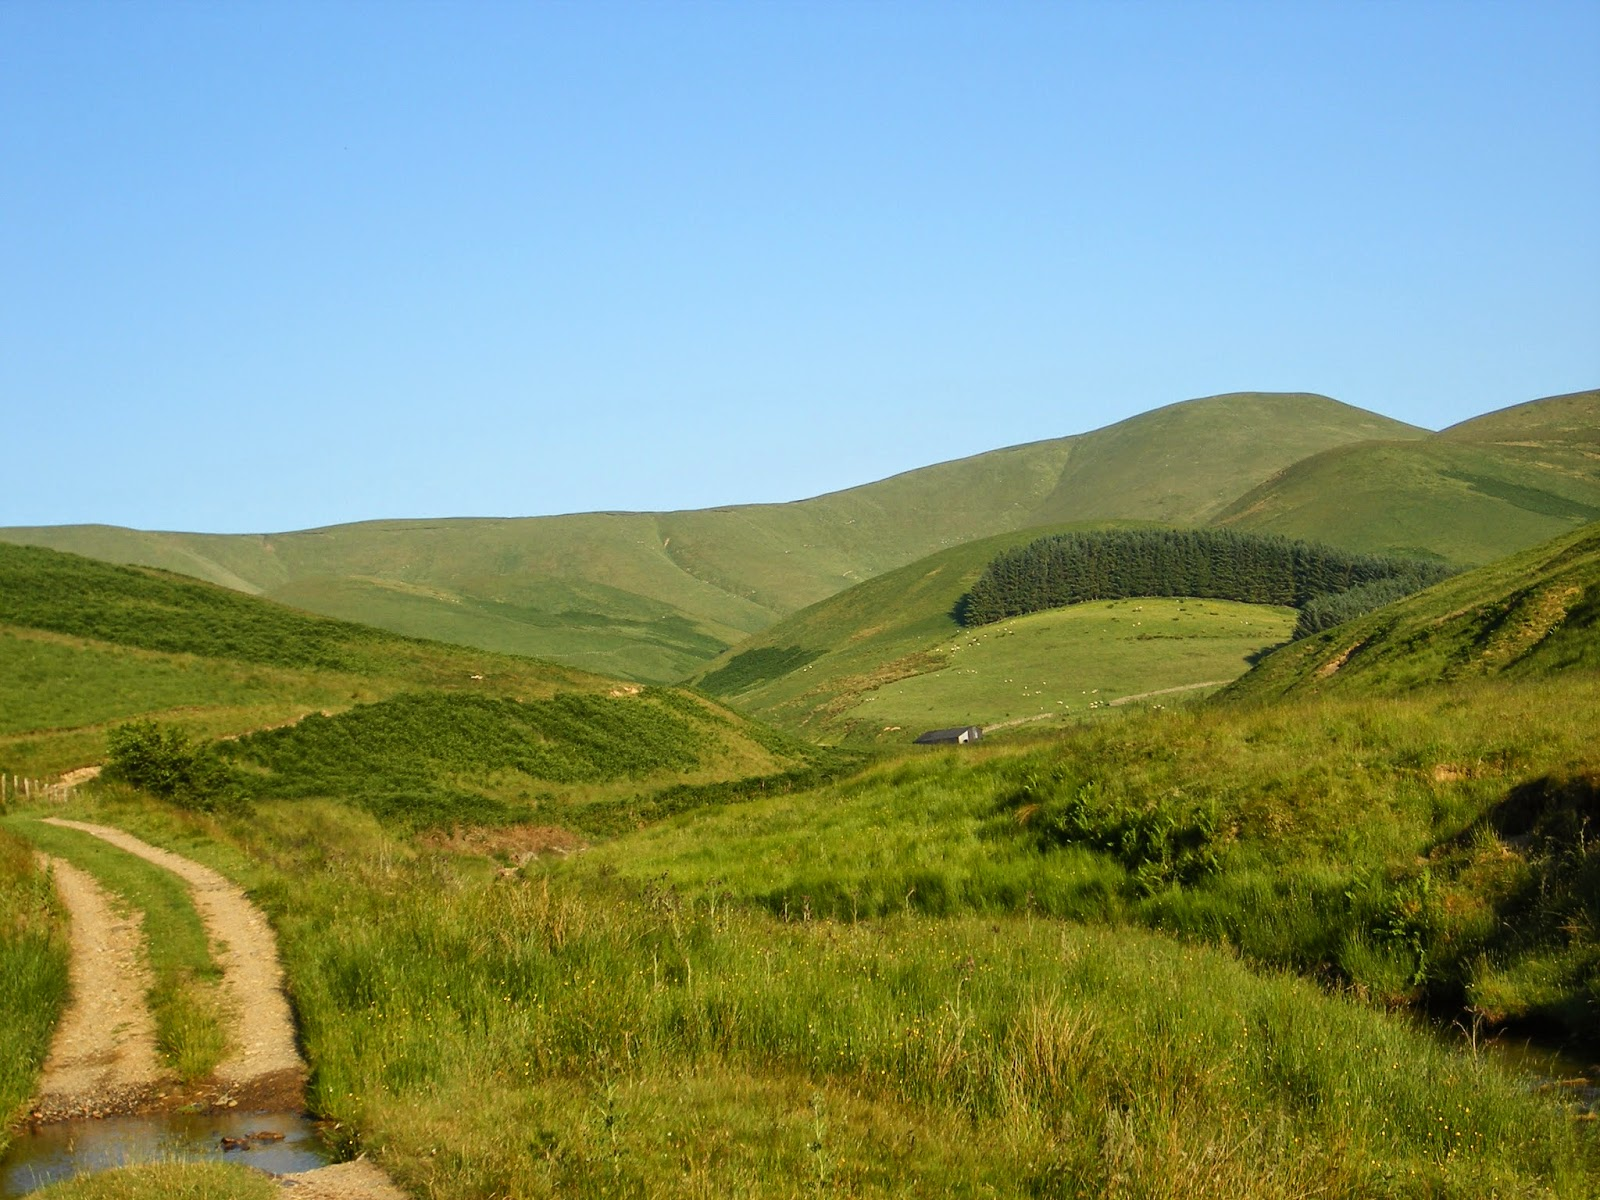 country farm landscape with hills and path in summer in scotland